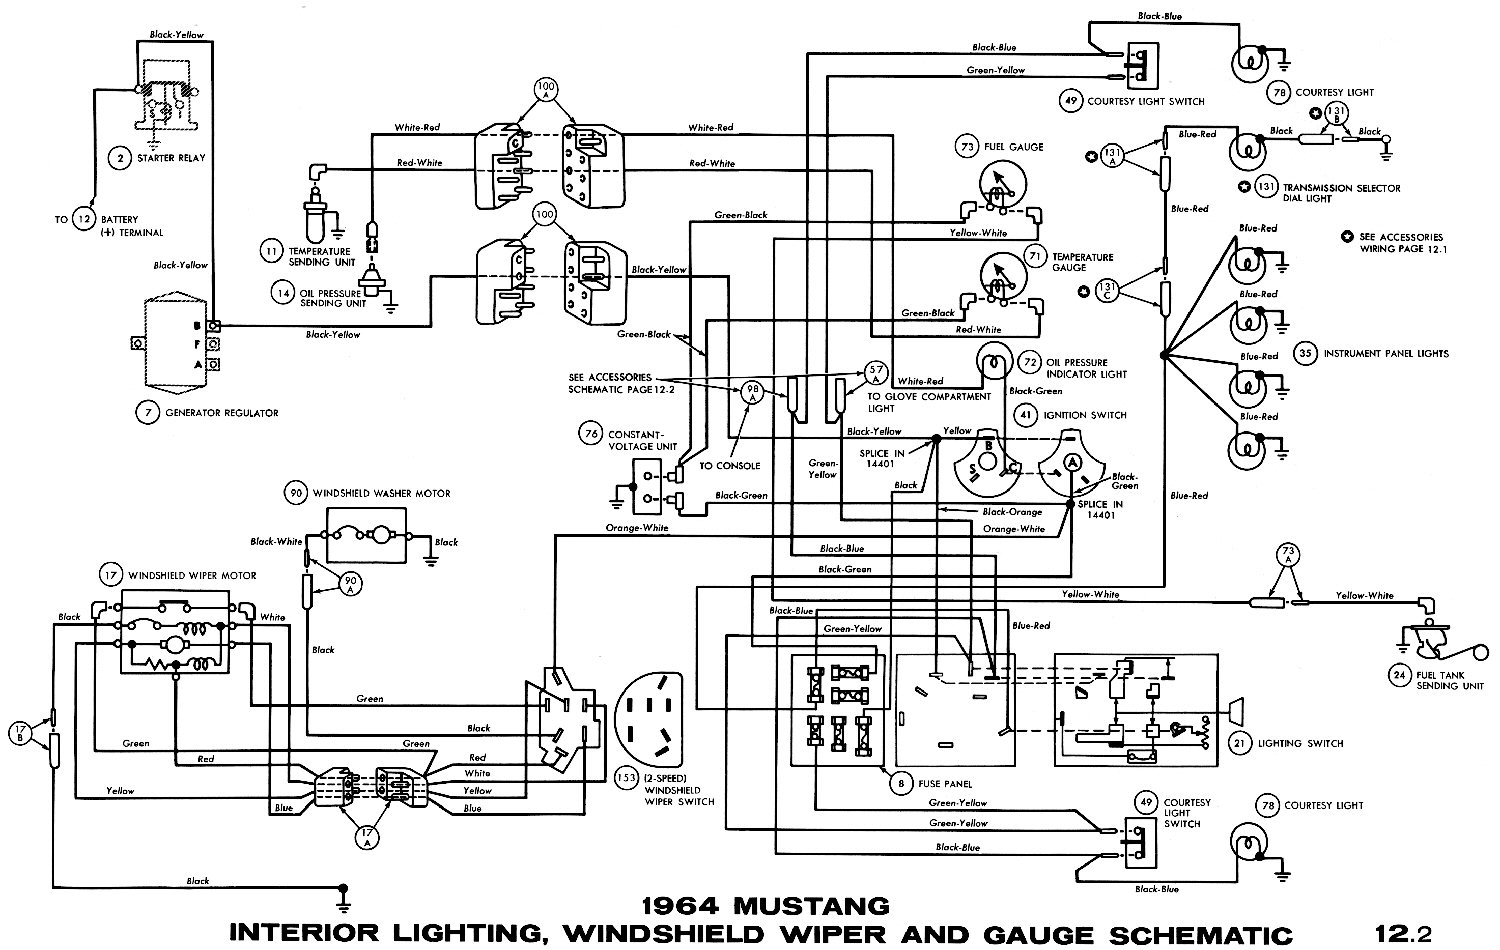 Mustang Wiring Diagram Ford